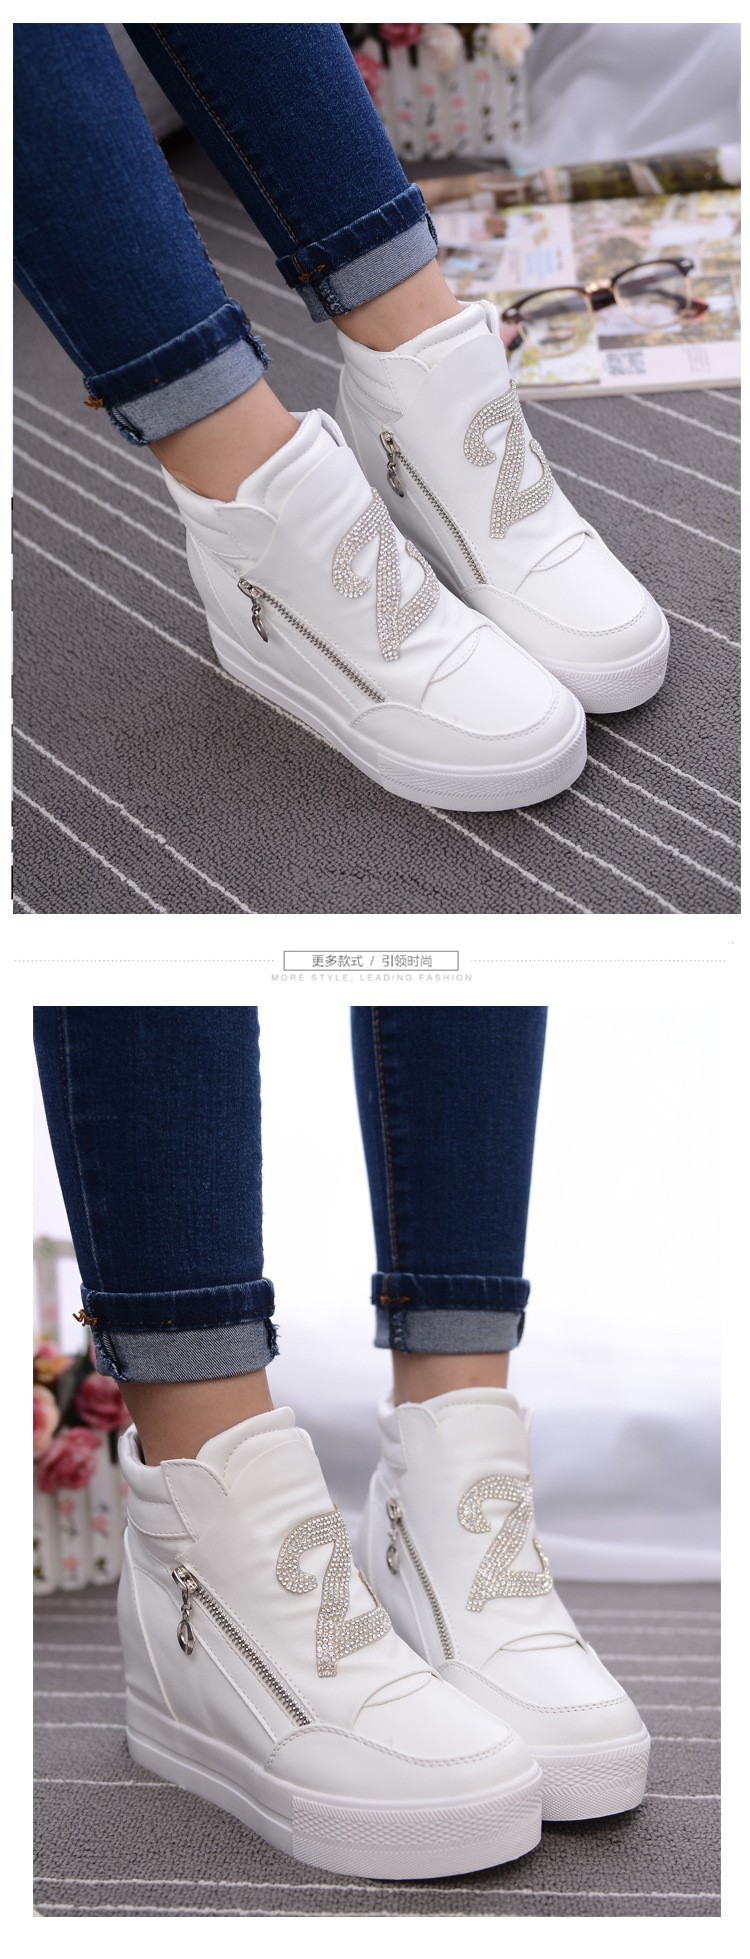 KUYUPP Women Casual Shoes Height Increasing Zipper Winter Shoes Women Sport Canvas Shoes Round Toe Black White Casual Shoes S49 (15)